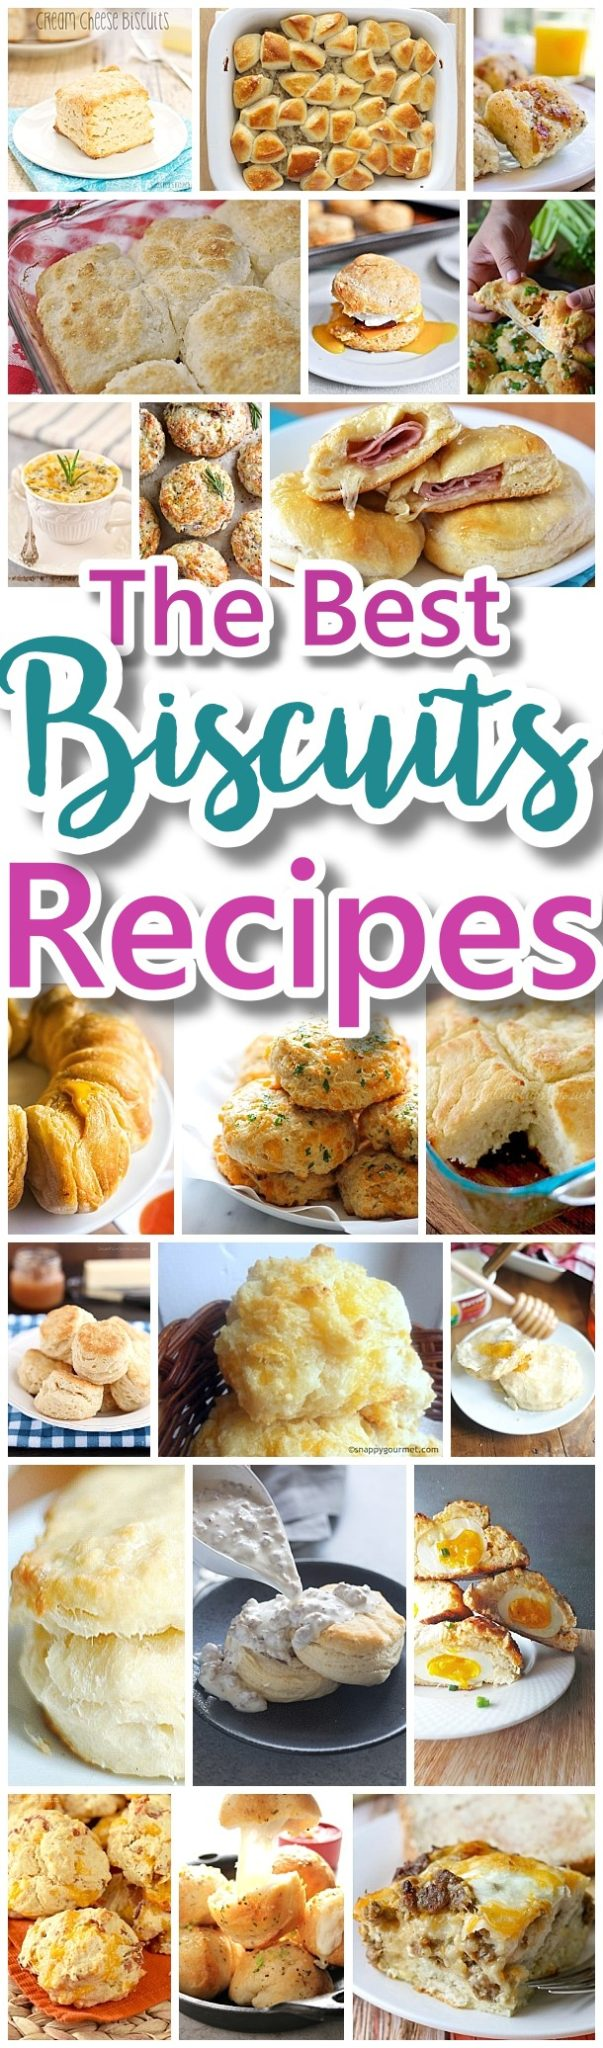 The Best Biscuits Recipes - Quick, Easy and Delicious Bread Sides and Main Dish Ideas for Breakfast, Brunch, Lunch and Family Dinners - Dreaming in DIY #biscuits #biscuitrecipes #homemdebiscuits #easybiscuits #rolls #homemadebreadsides #bread #breakfastrecipes #comfortfood